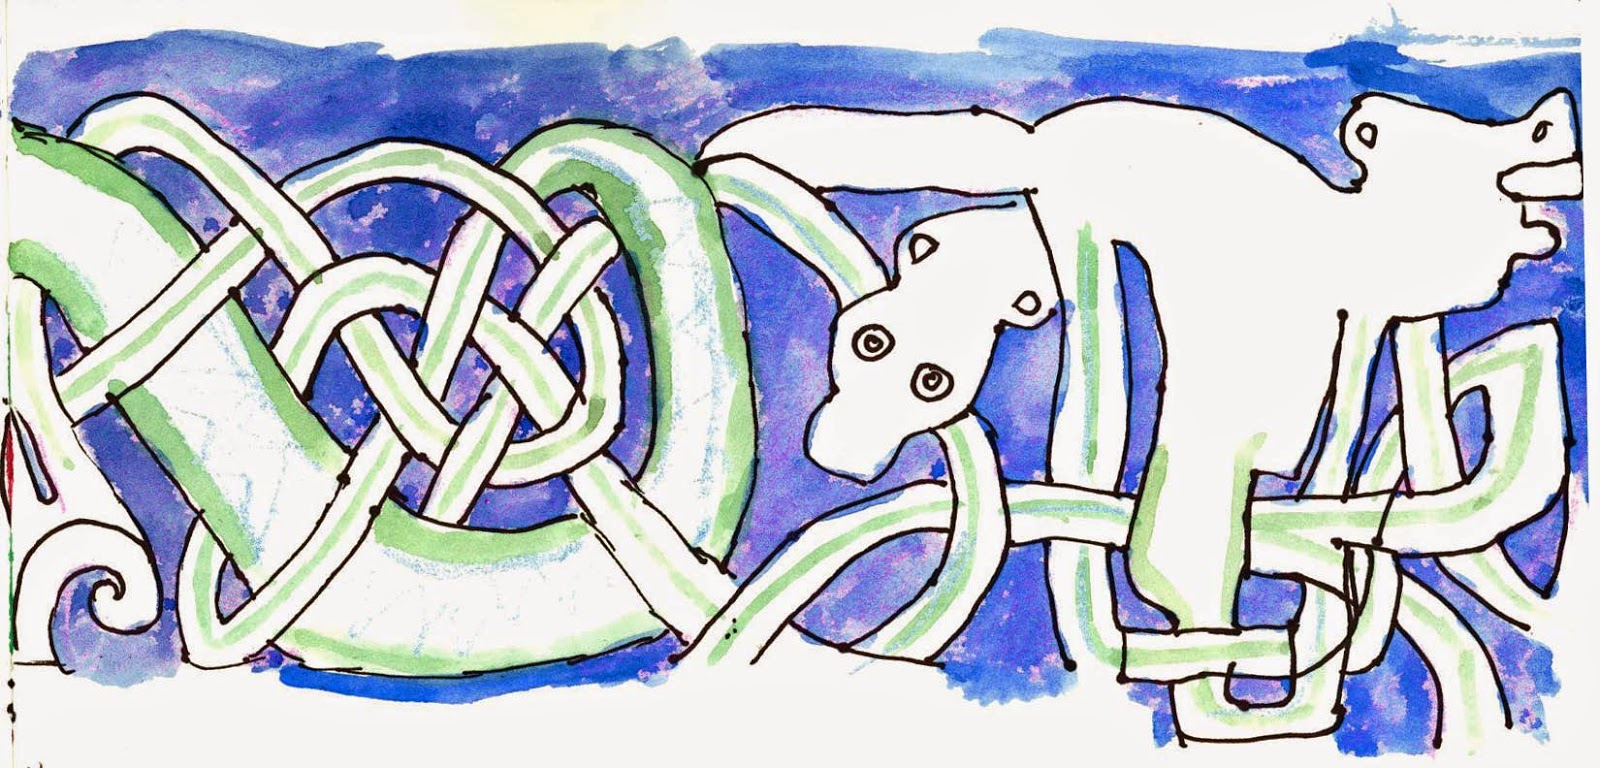 My pen and watercolour sketch of the knotwork fragment